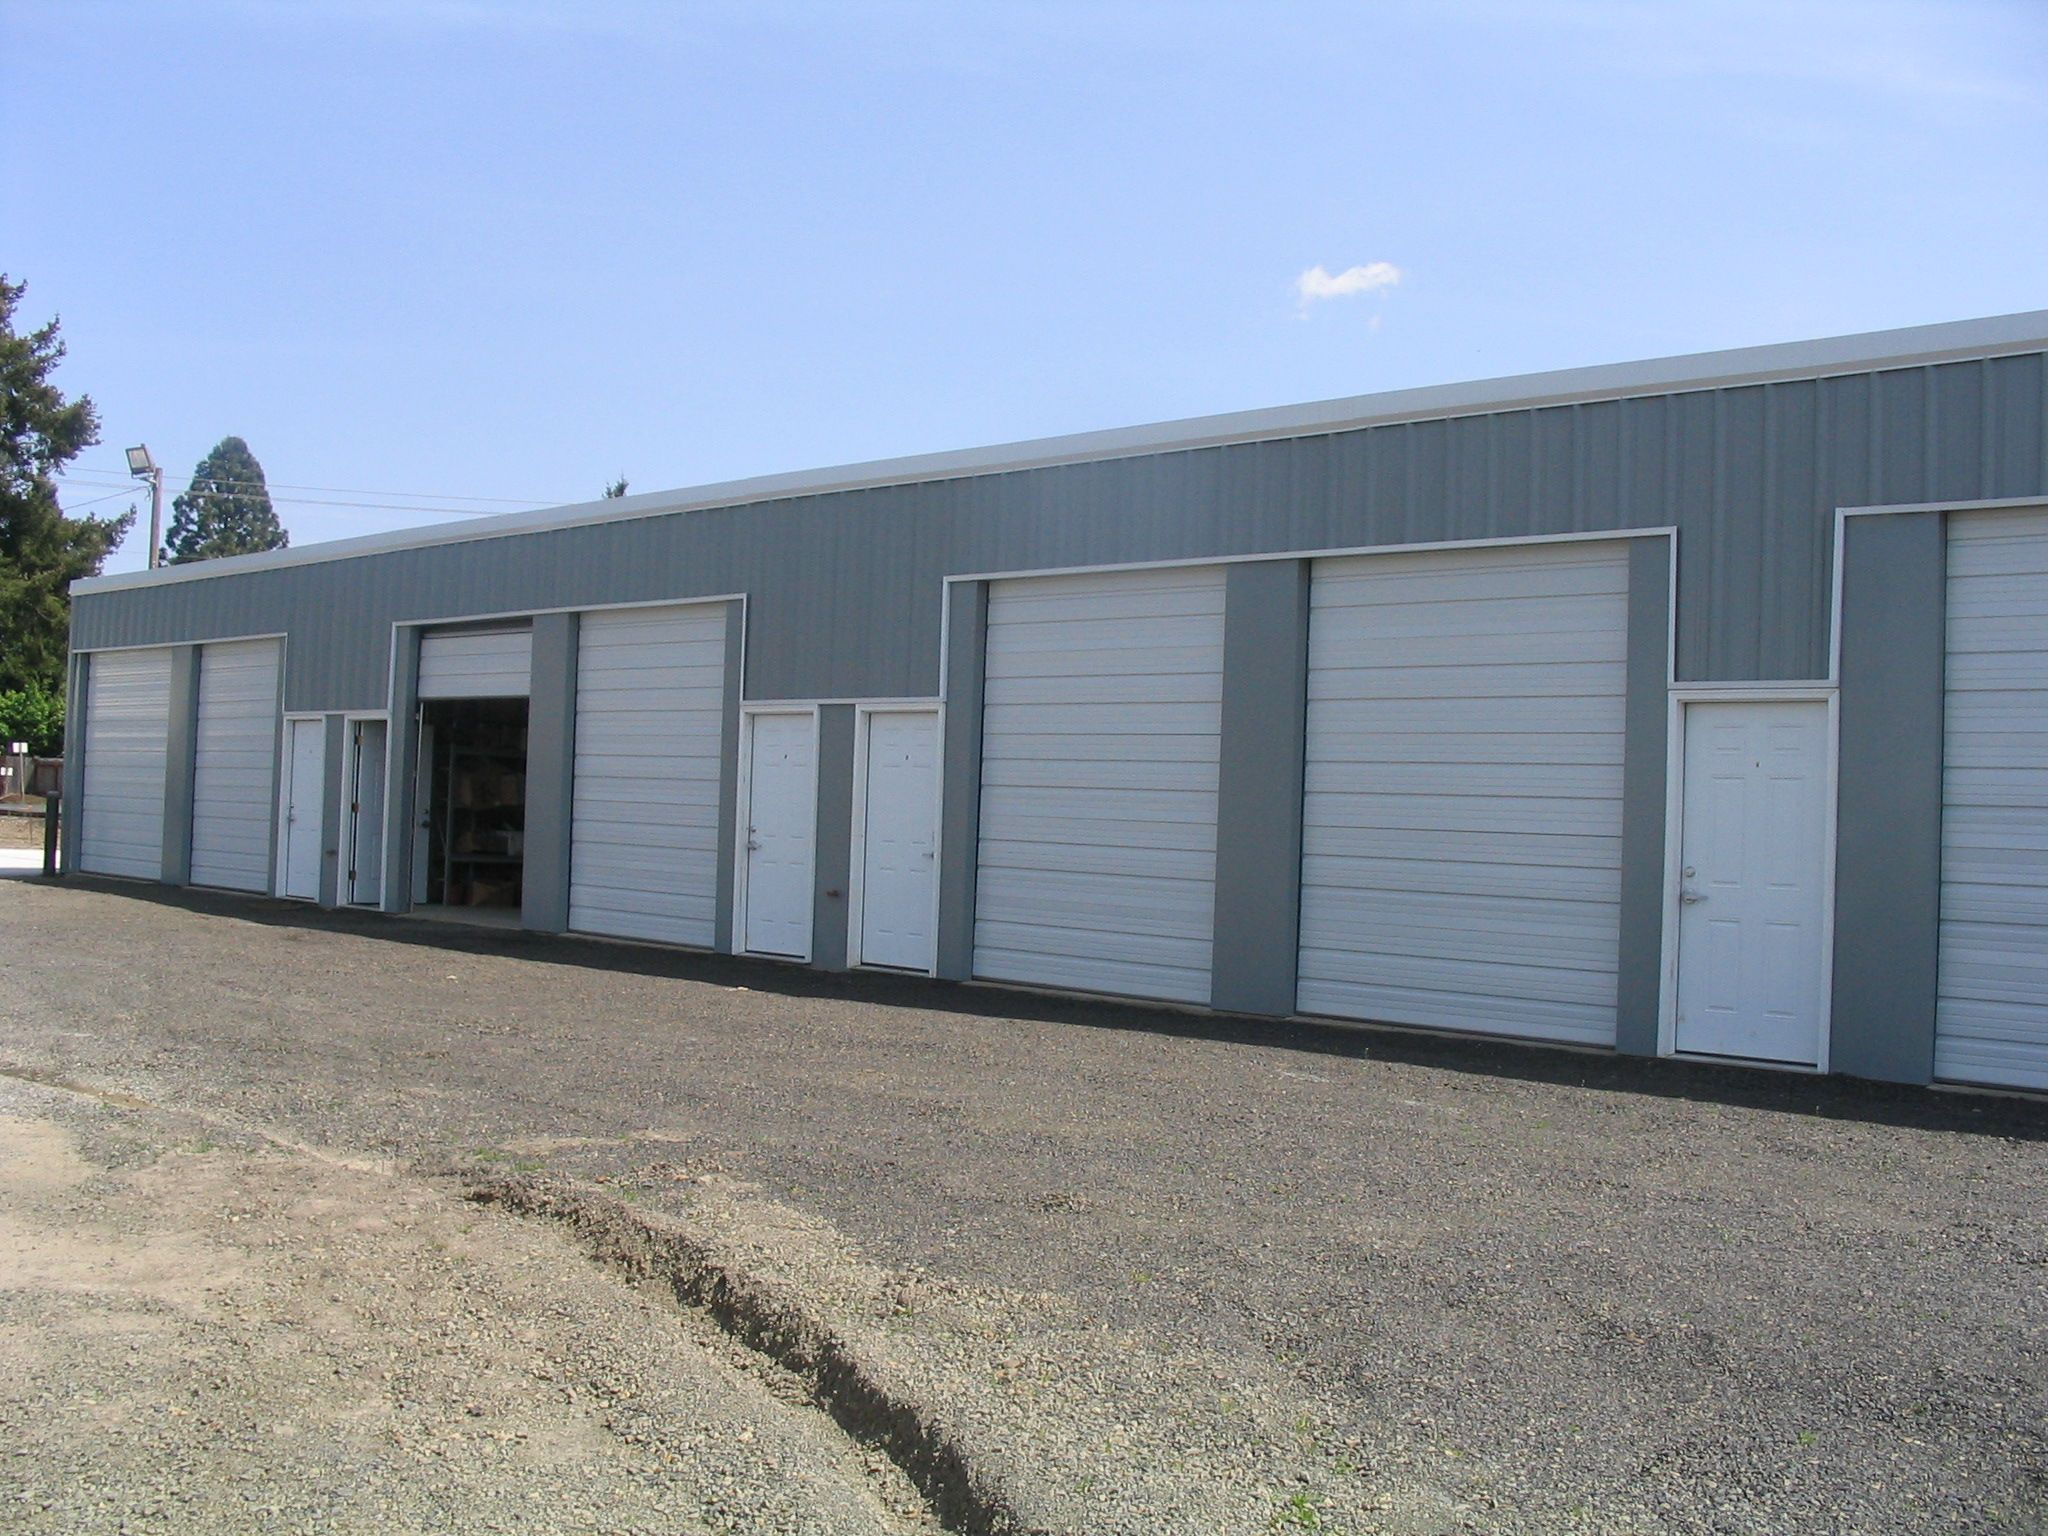 420 Sf Industrial Flex Space For Lease Newberg Miller